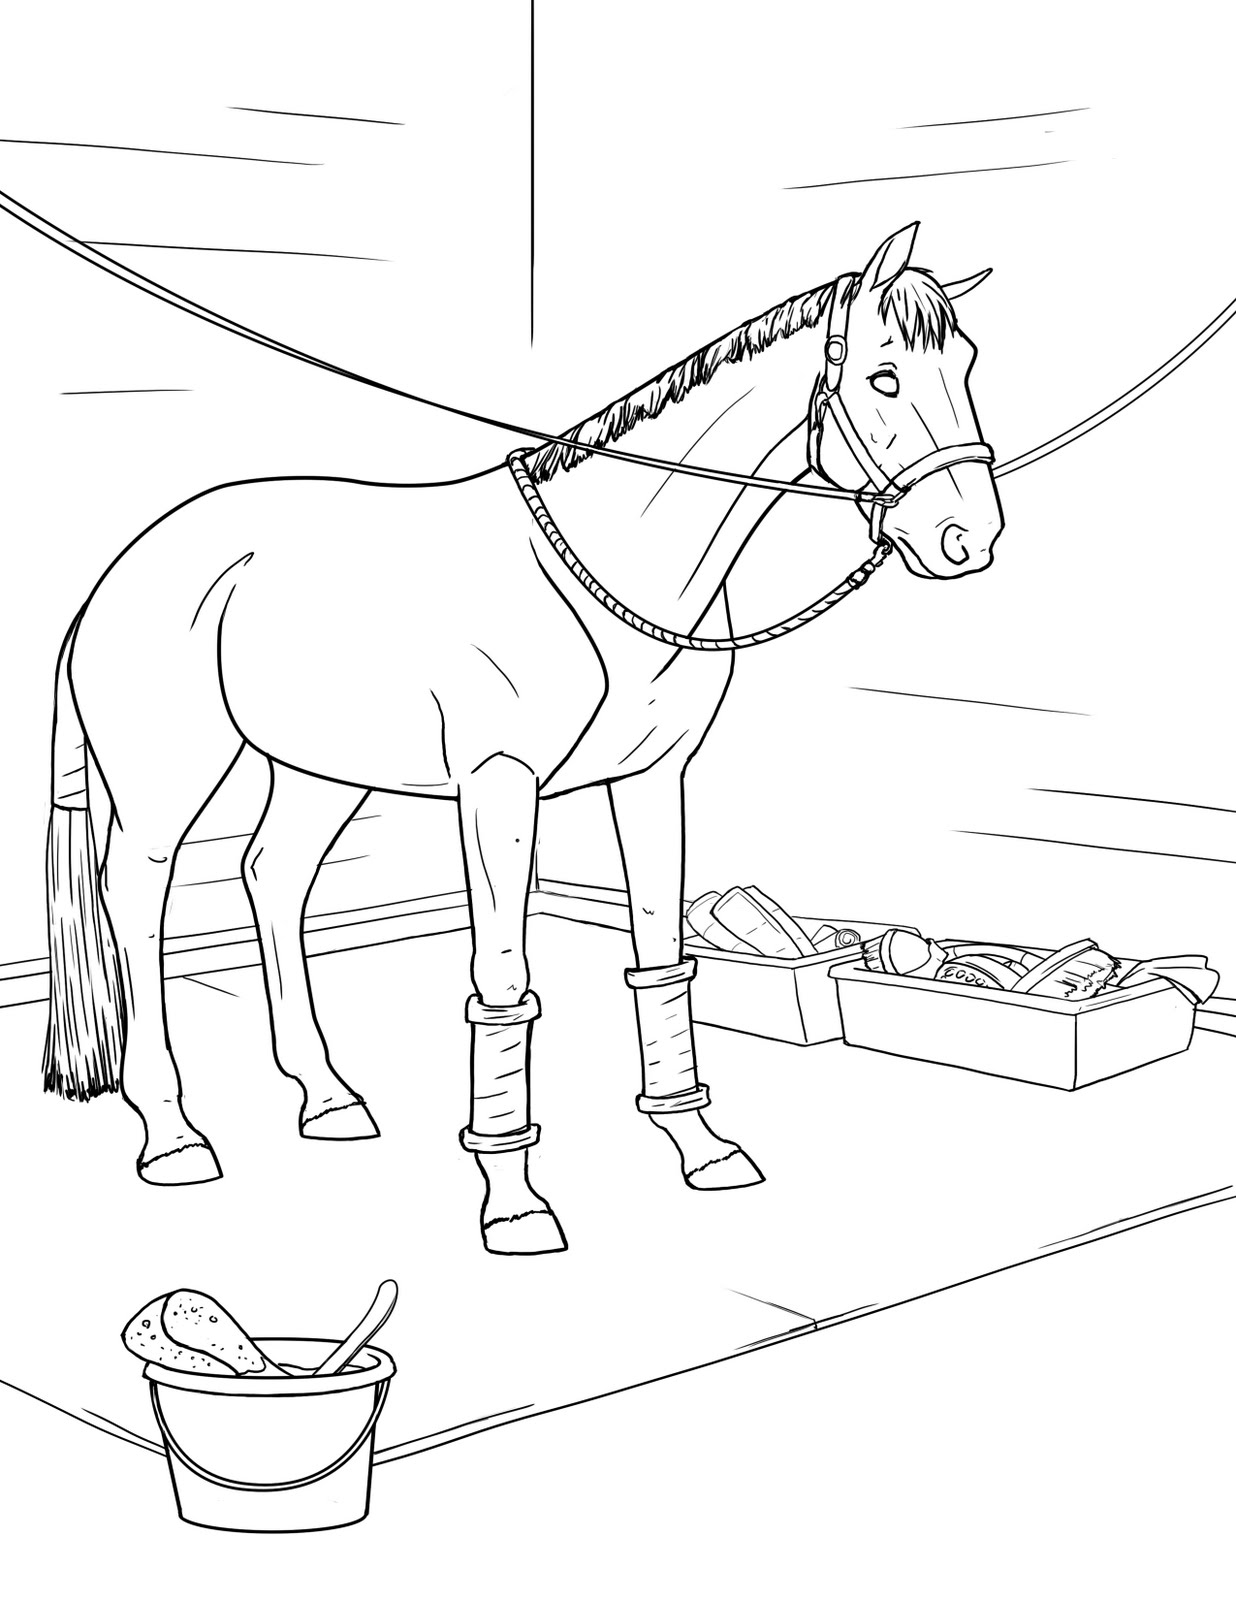 coloring book pages of horses - photo#10